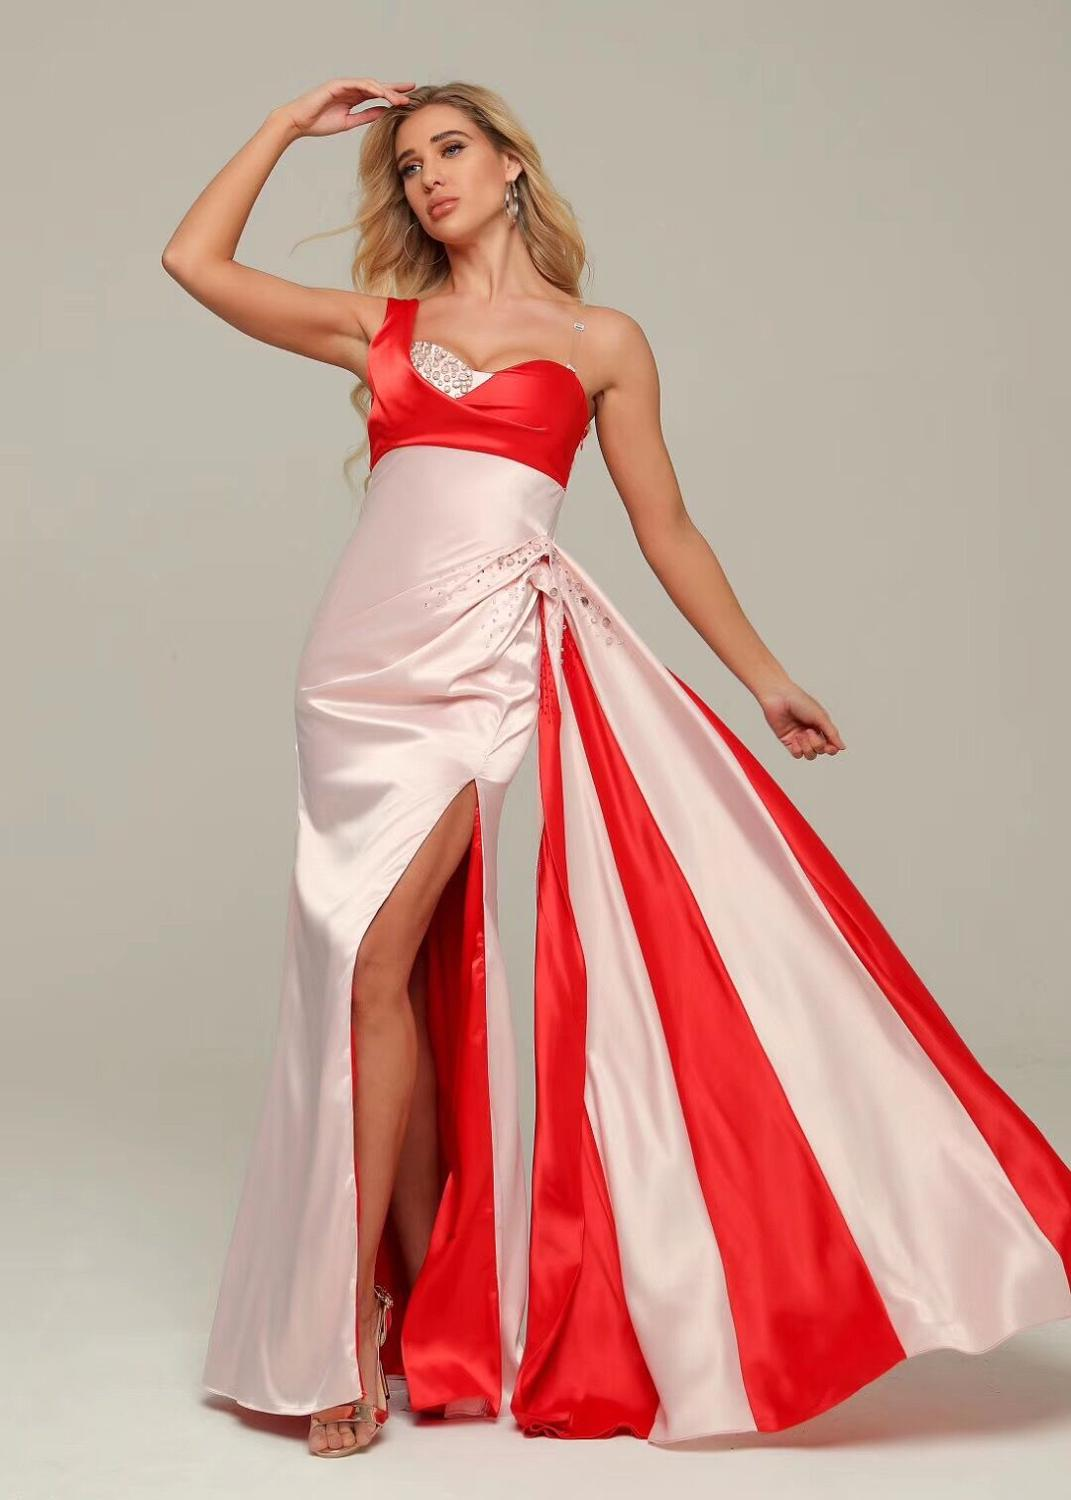 Maxi Dress Elegant Sexy One Shoulder Celebrity Fashion Night CLub Wedding Party Dress Christmas Holiday Long Dresses Sexy